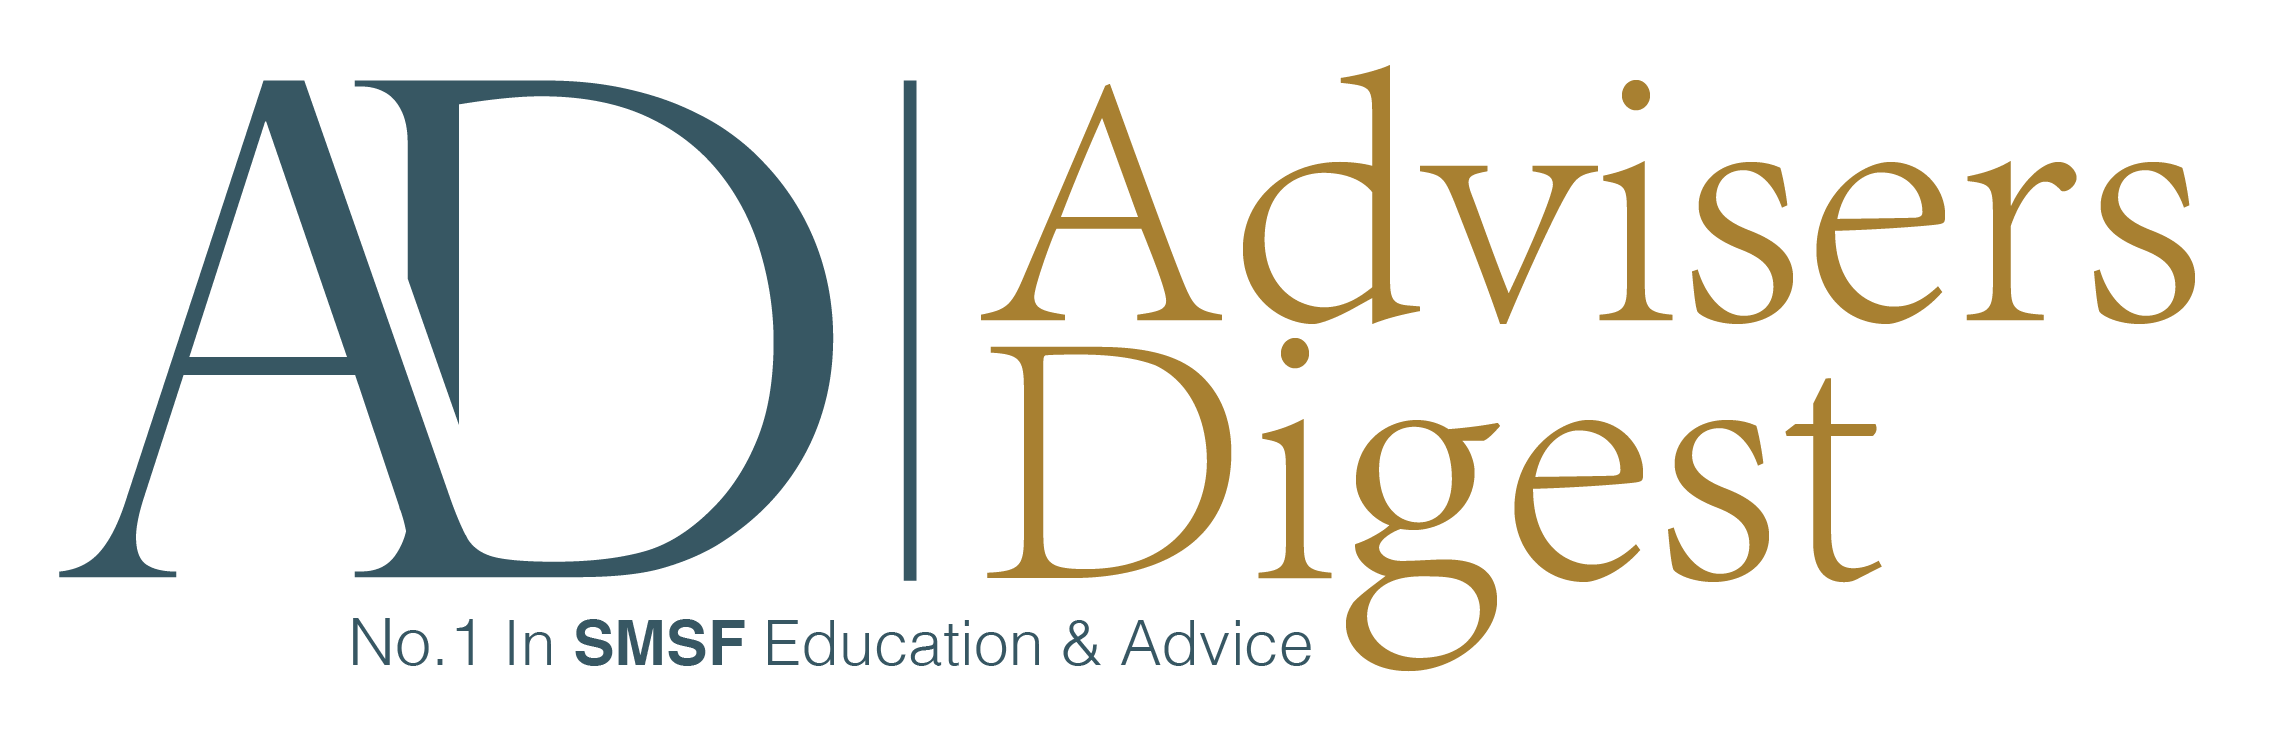 Advisers Digest|No.1 in SMSF Education & Advice